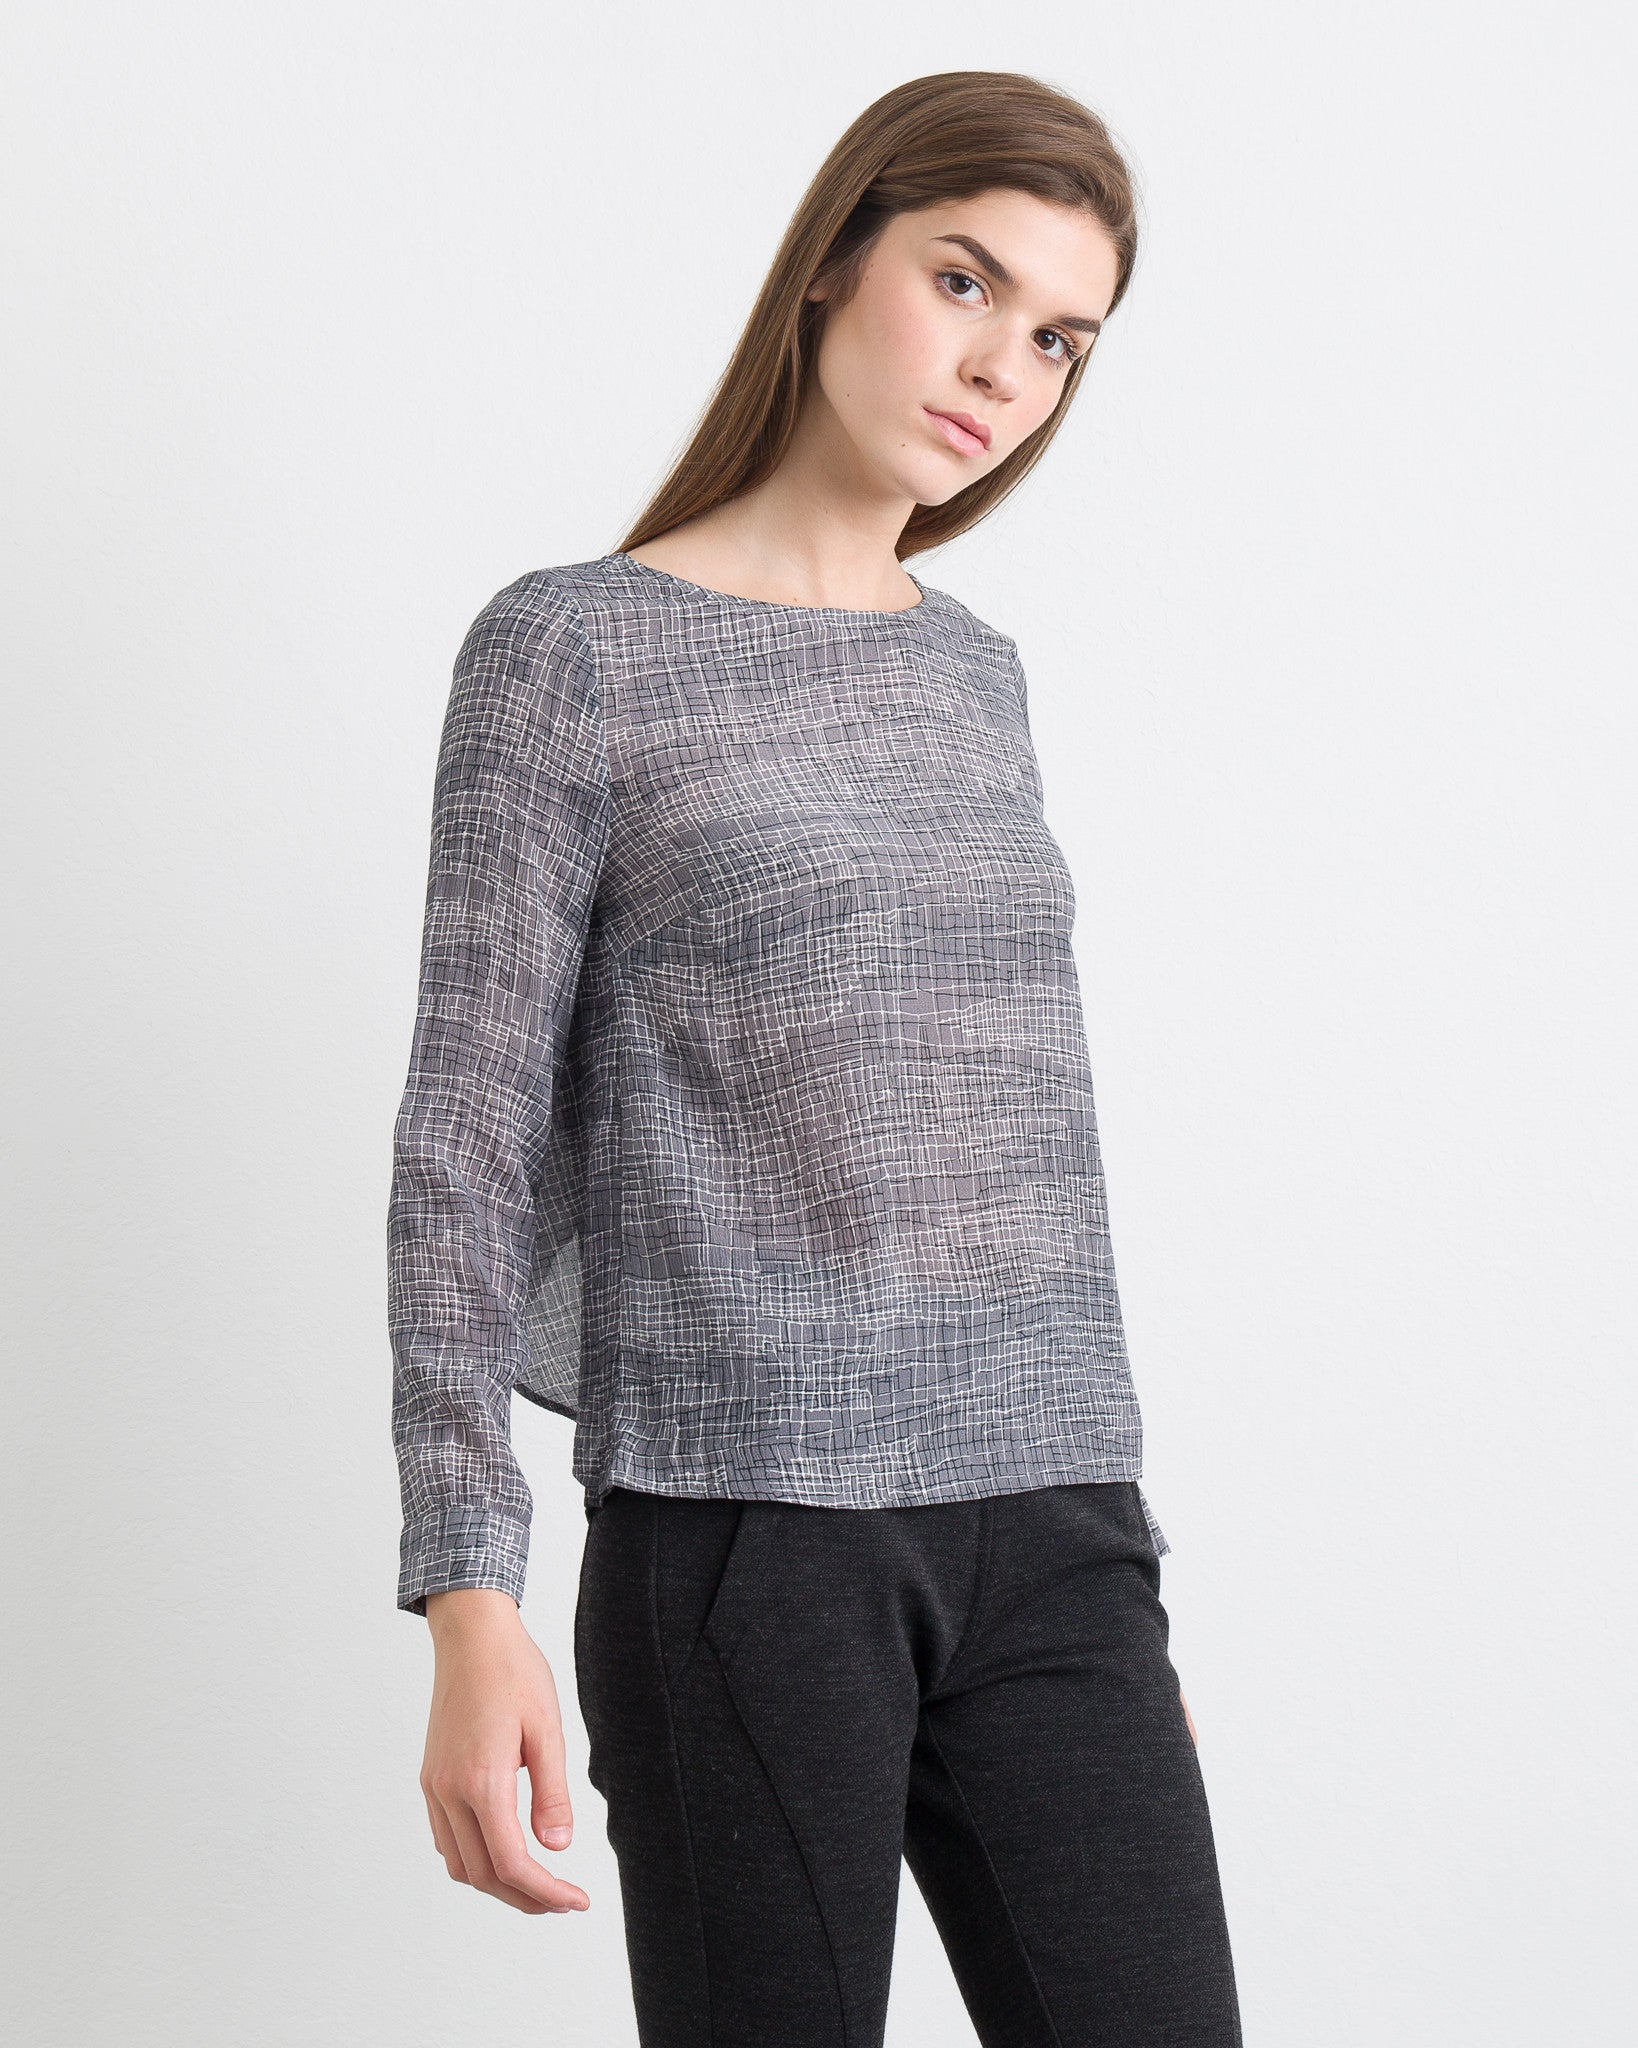 WOMEN - Ashe Blouse With Double Layer Back